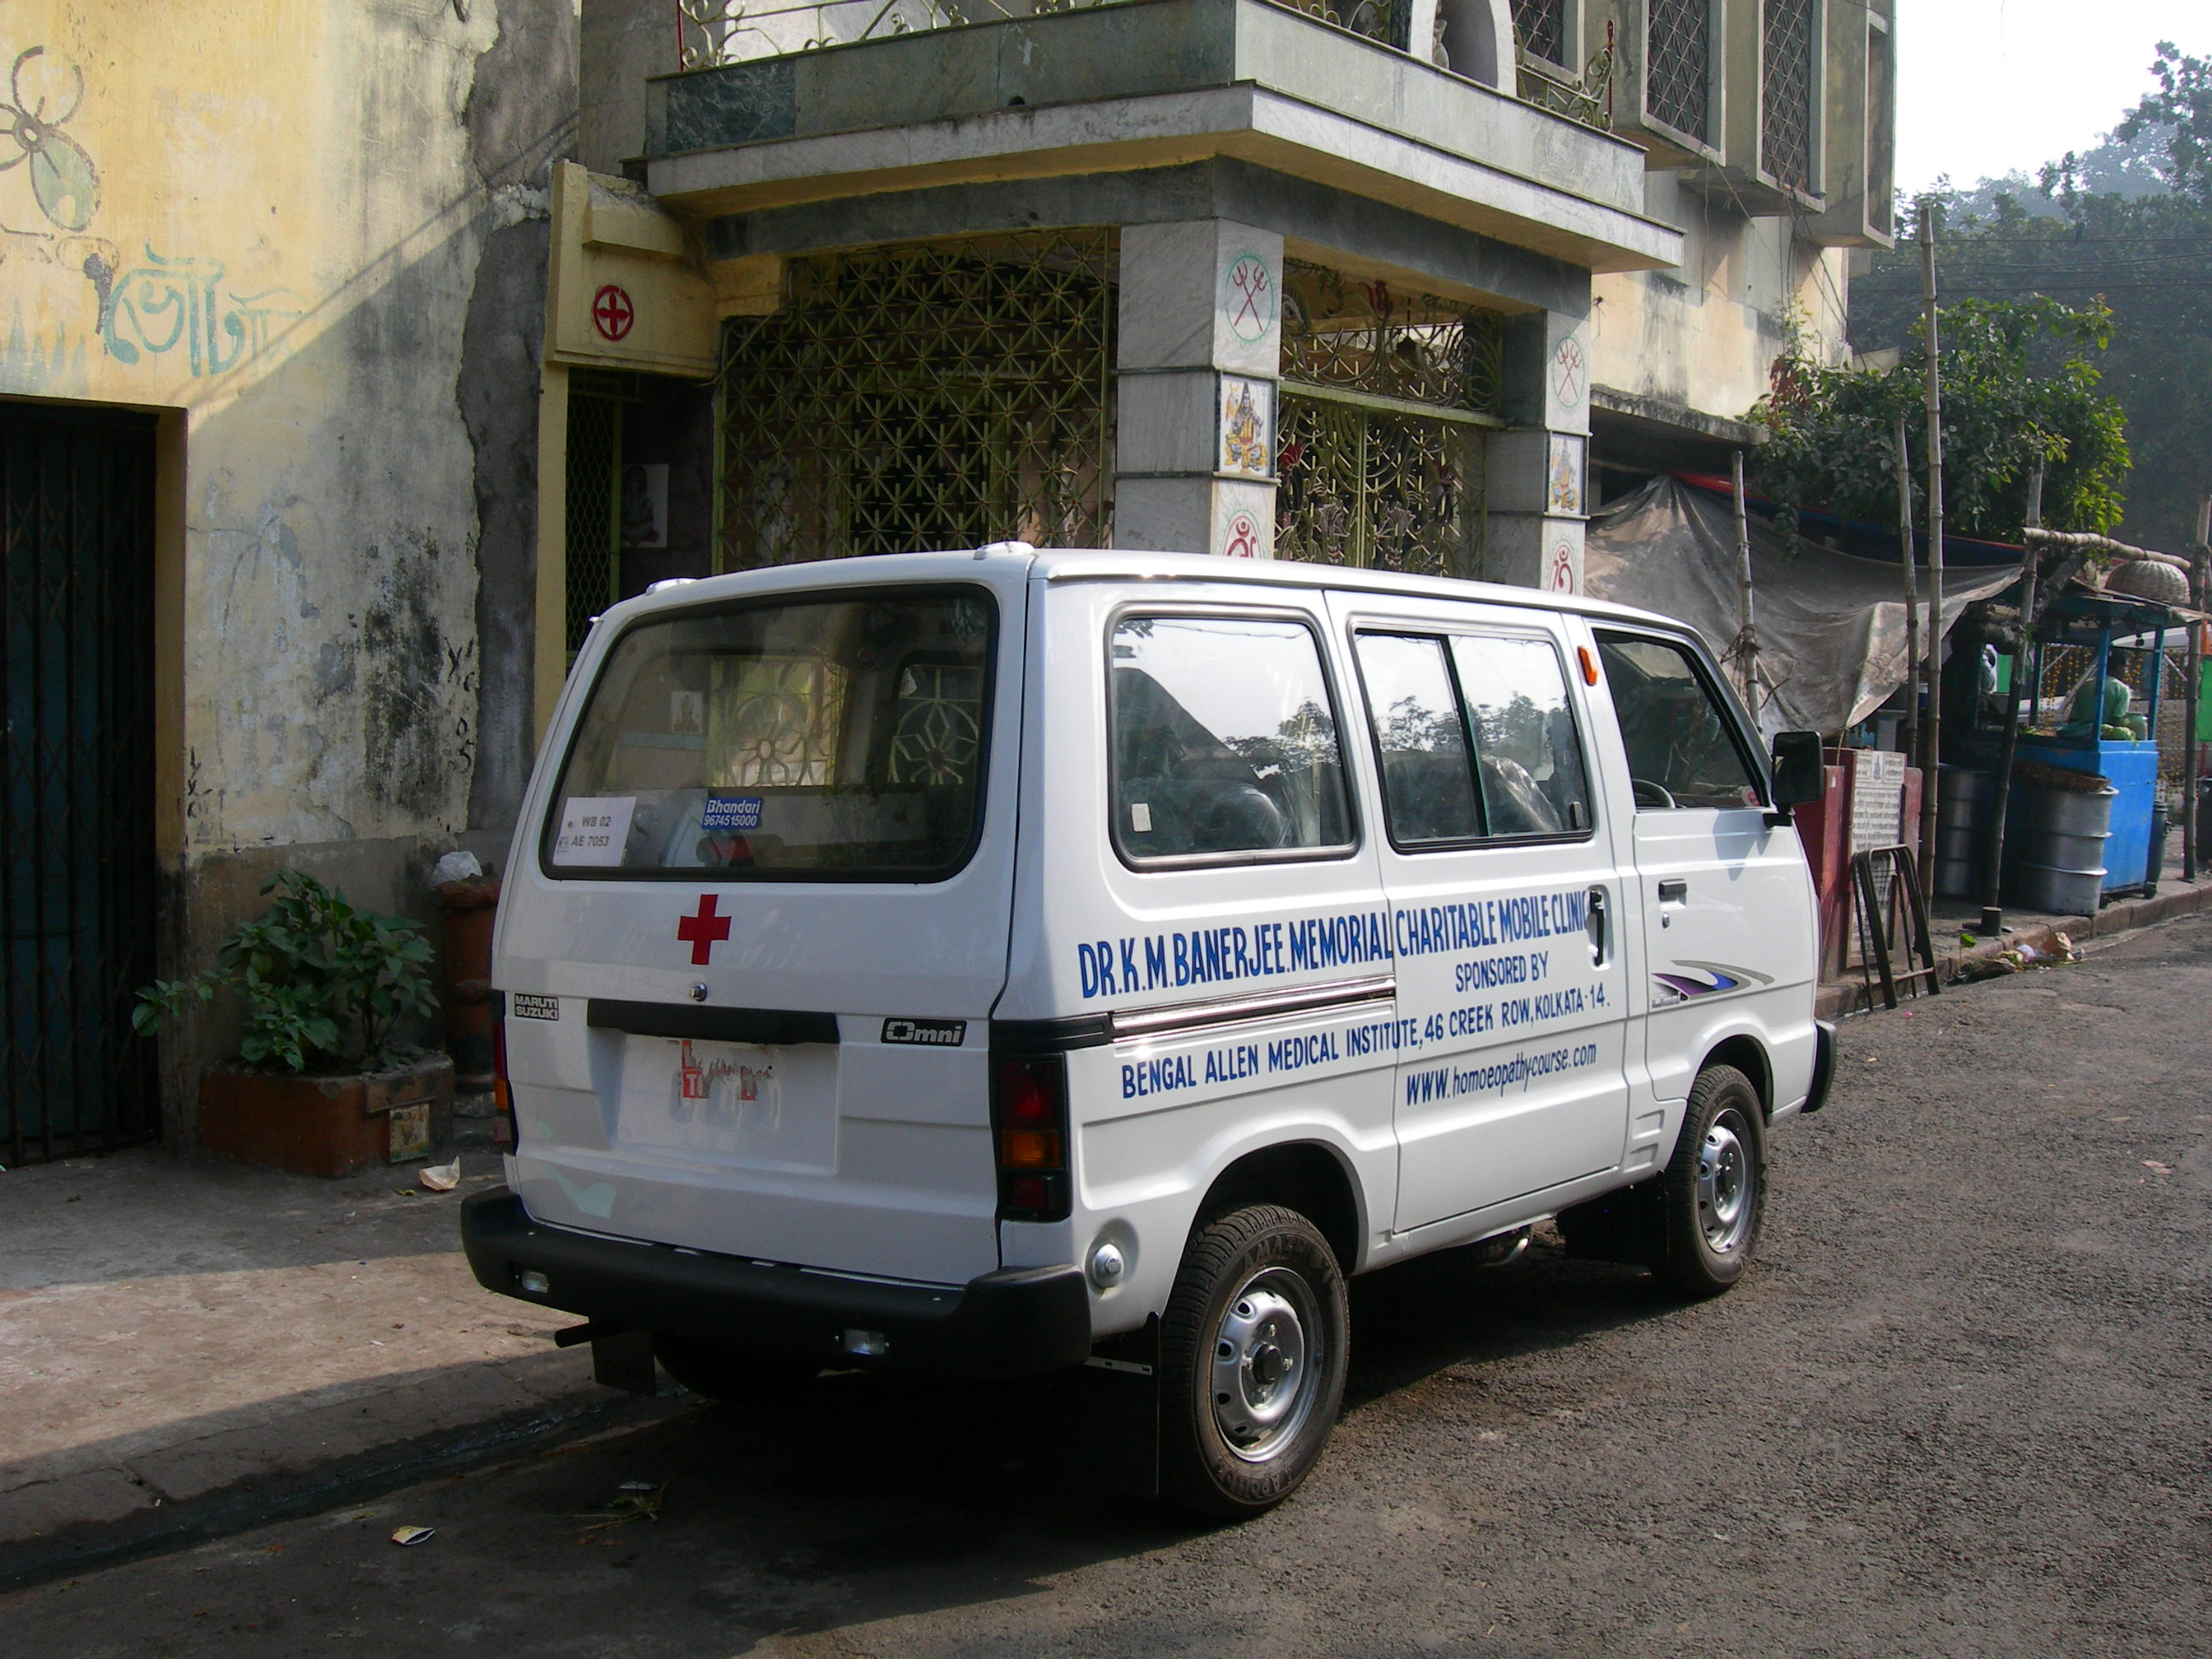 The course supports the work of the Homoeopathic Medical Van of Bengal Allen Institute